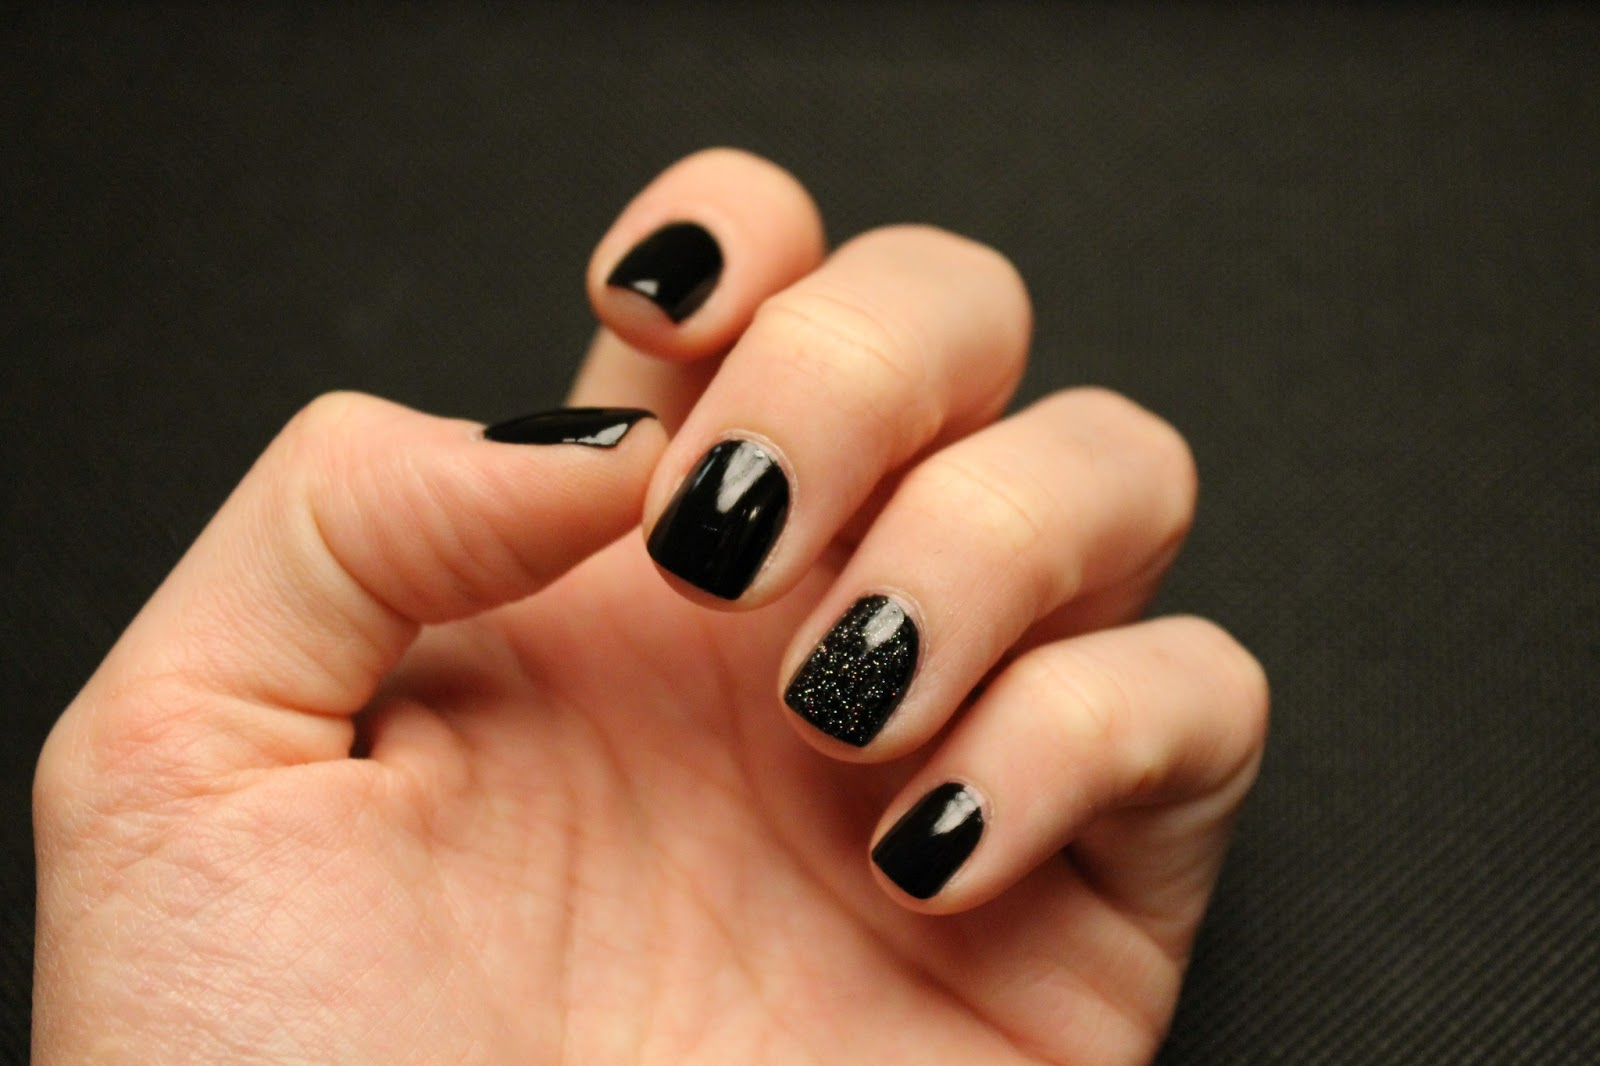 Black Square Nails!